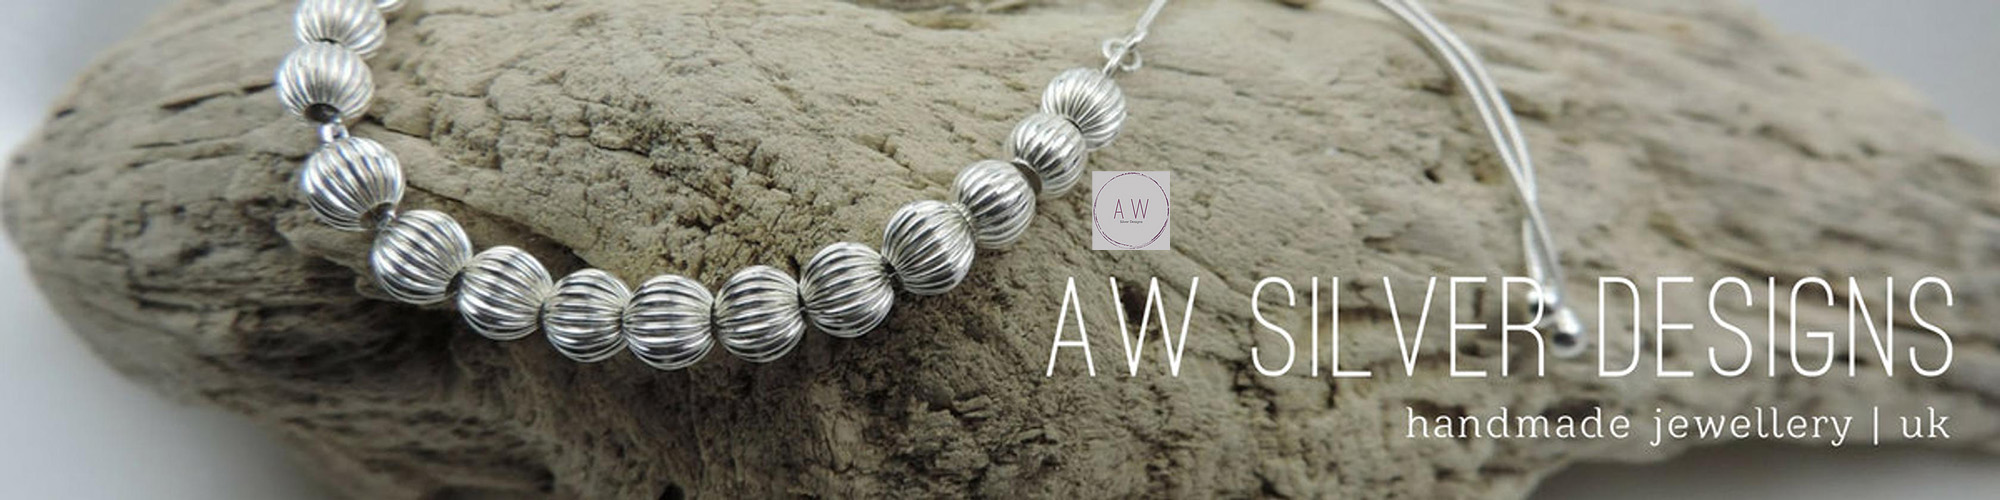 A W Silver Designs banner image